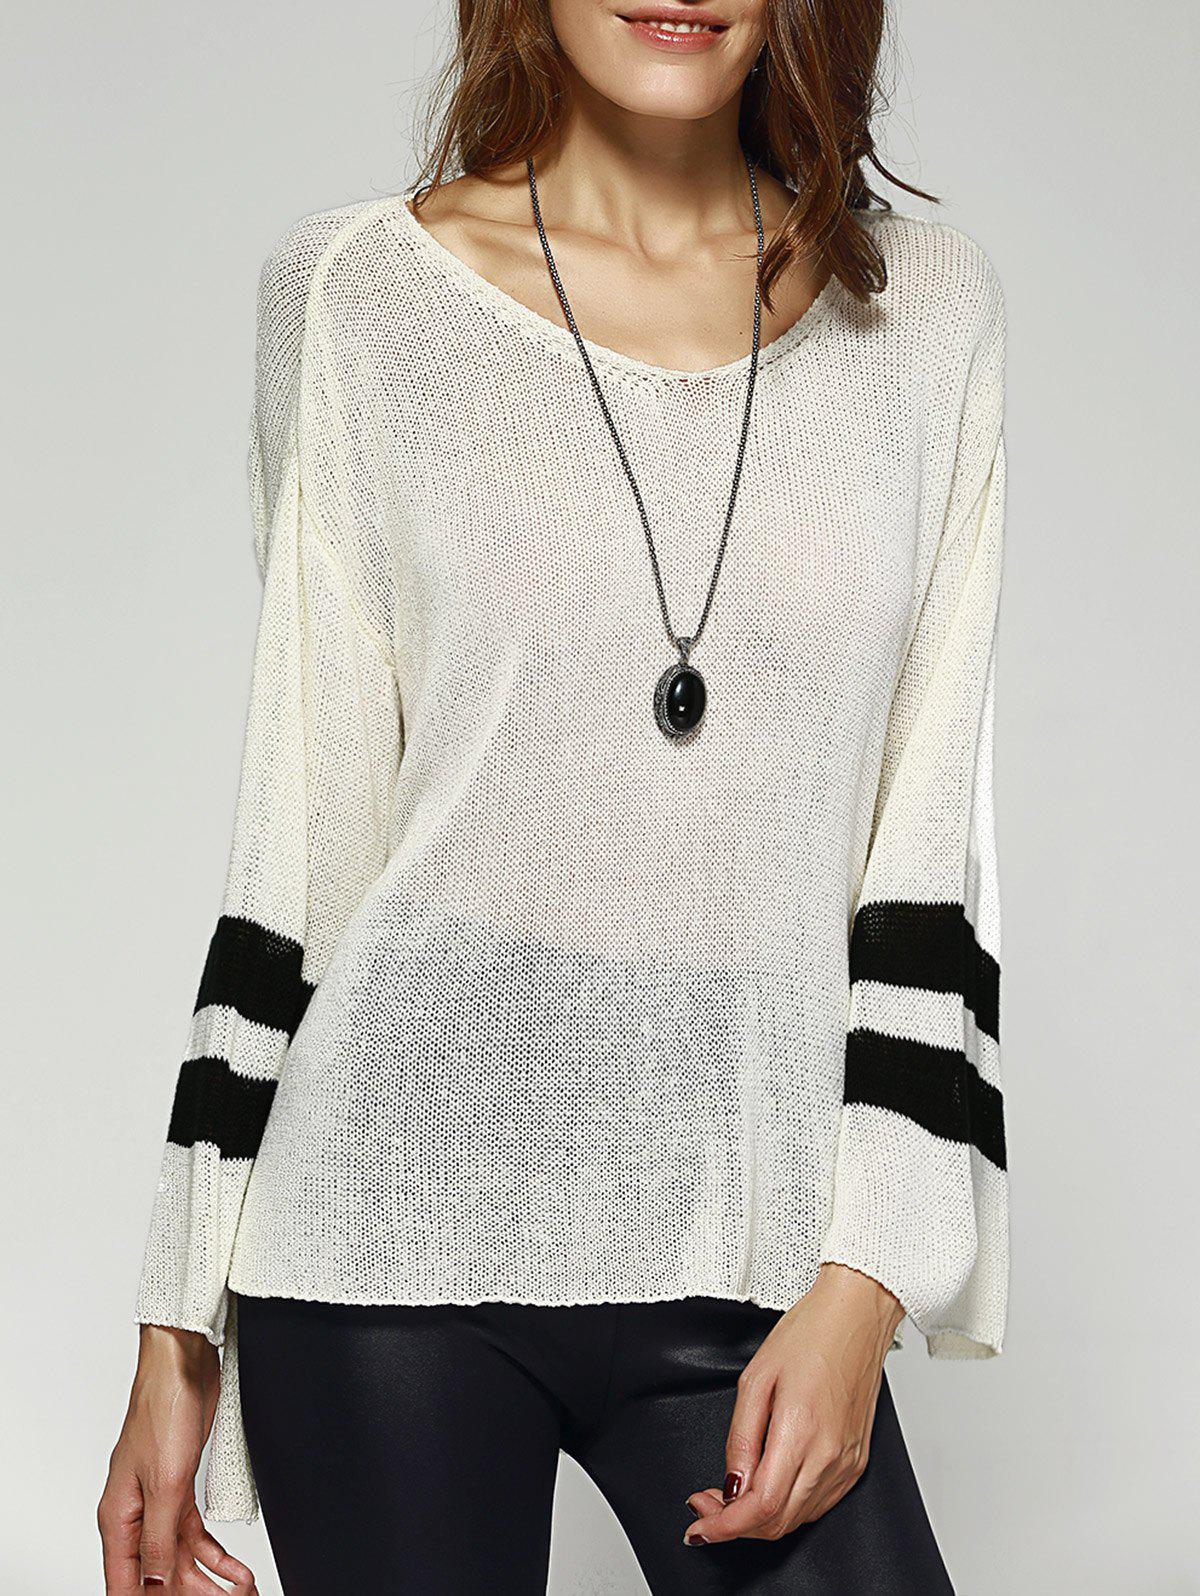 Chic Scoop Neck Loose Striped Sleeve High Low Knitwear For Women - ONE SIZE WHITE